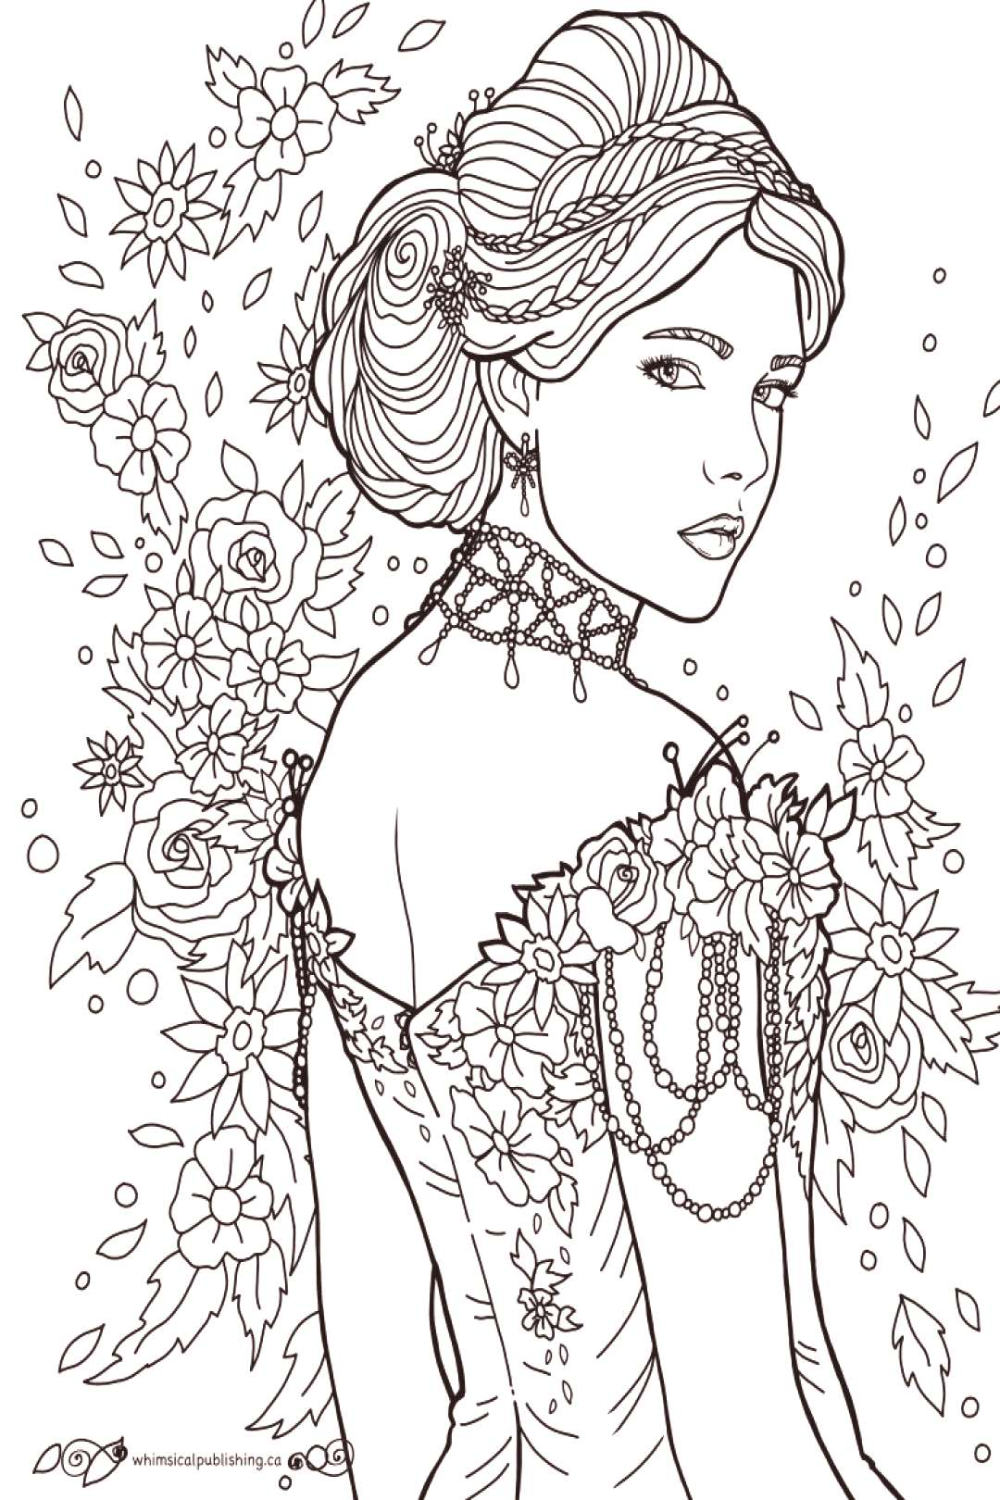 Lovely Lady Free Colouring Page